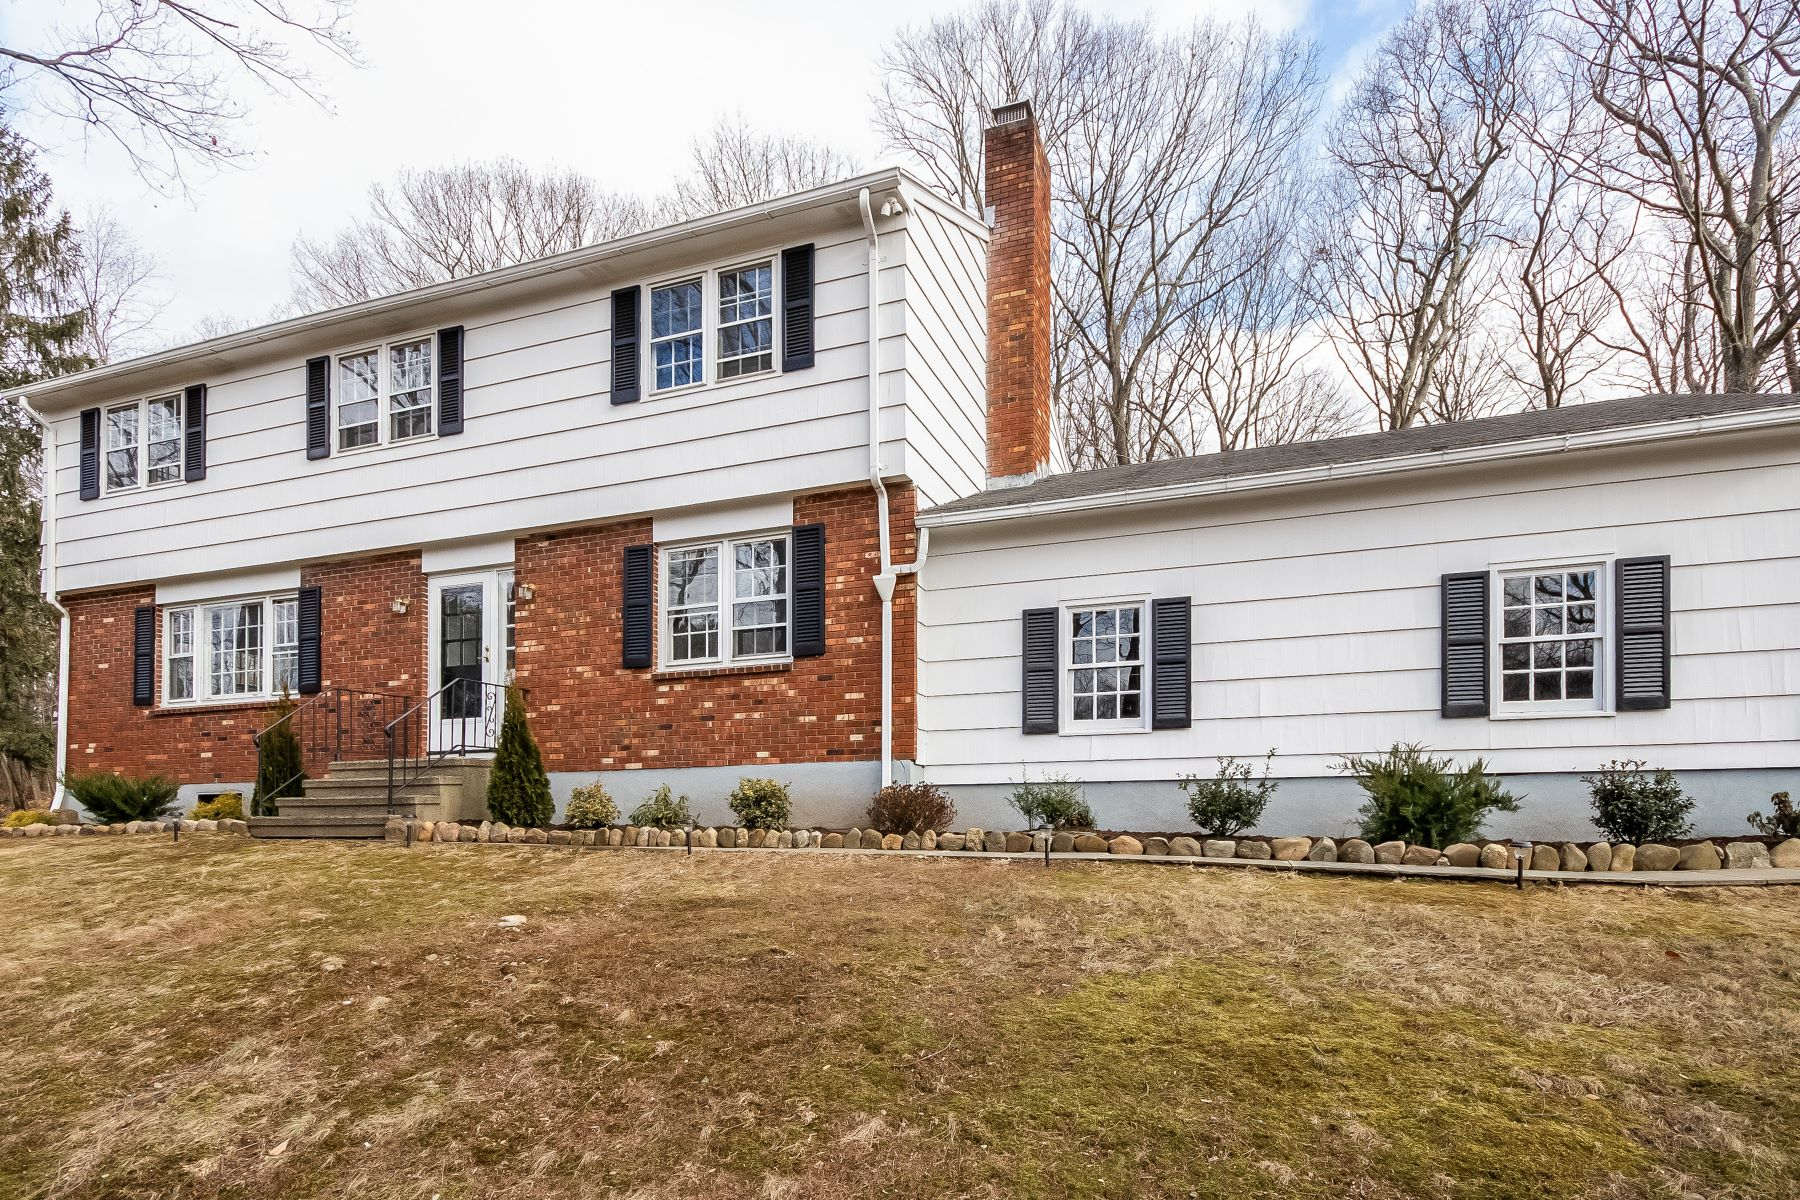 single family homes for Sale at Well Maintained 4 Bedroom Colonial Home 81 Midland Road, Trumbull, Connecticut 06611 United States